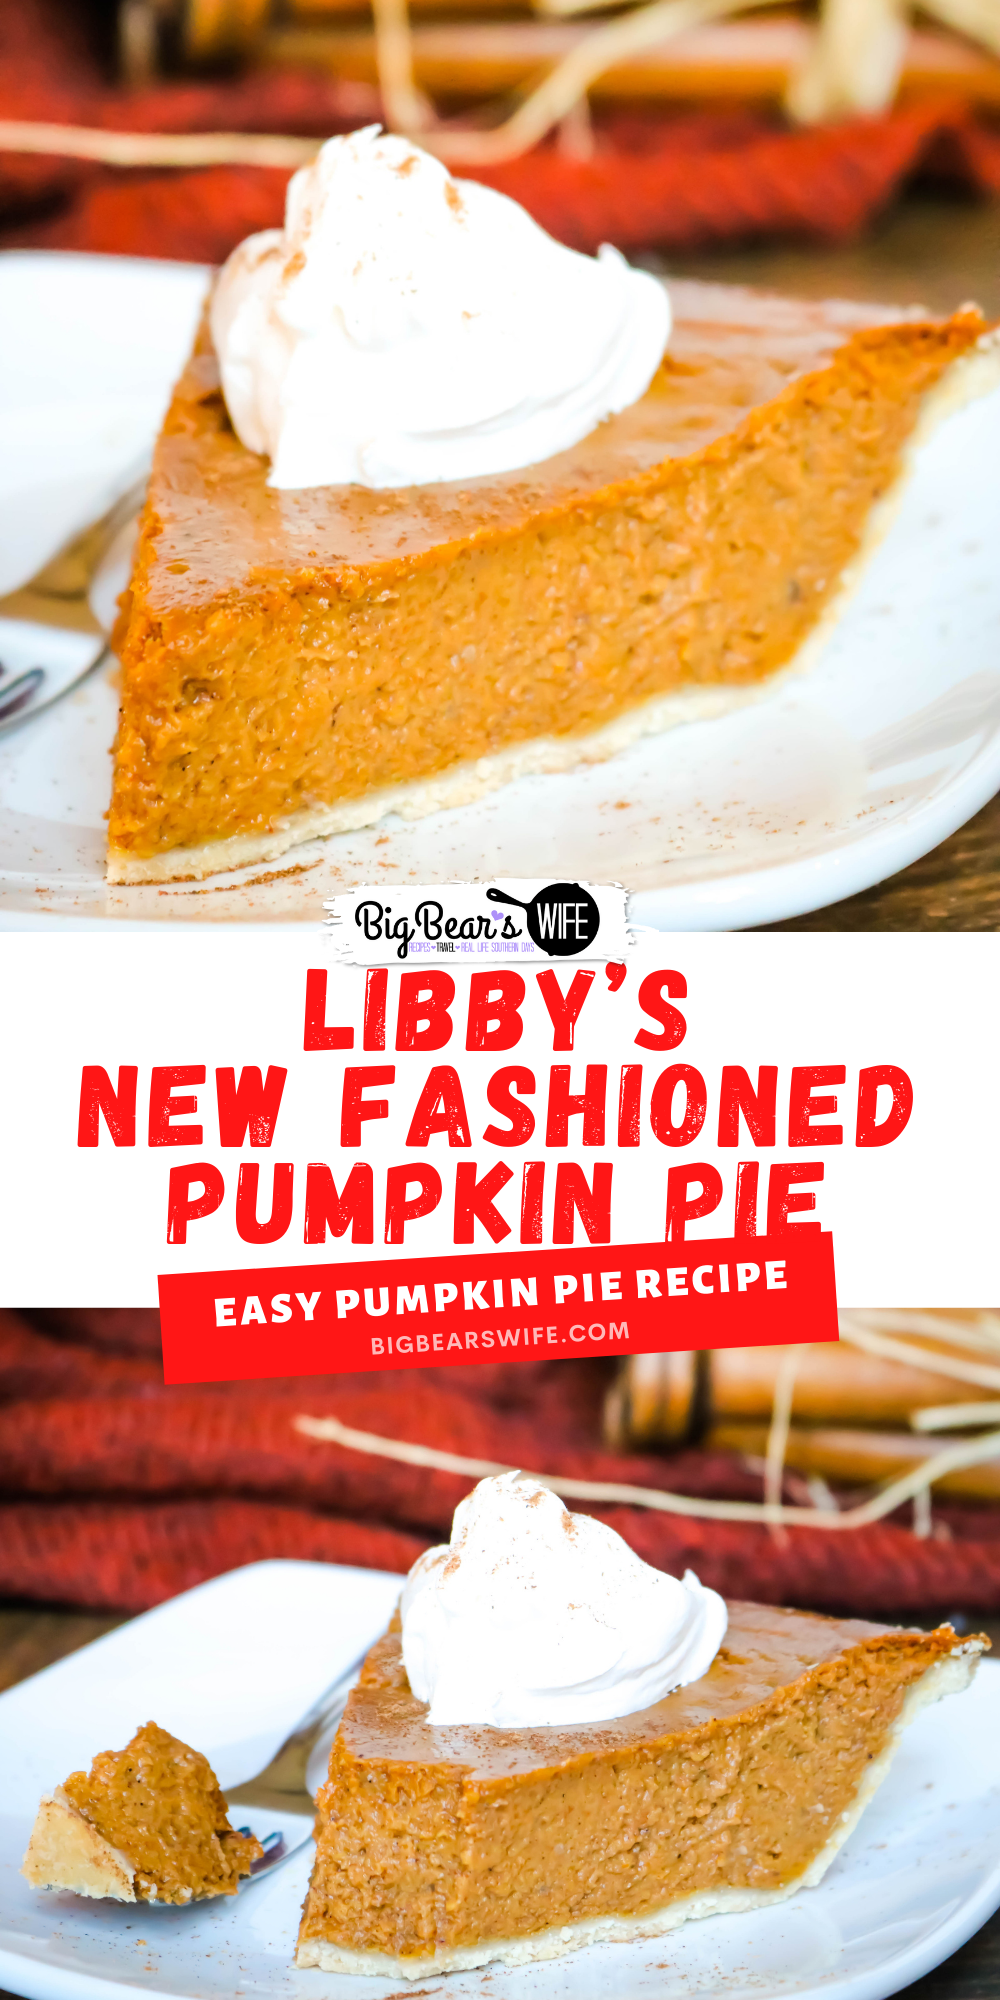 Libby's changed their famous pumpkin pie in 2019 so now you'll find the old one and the new recipe on their cans of pure pumpkin. This is Libby's New Fashioned Pumpkin Pie Recipe! via @bigbearswife